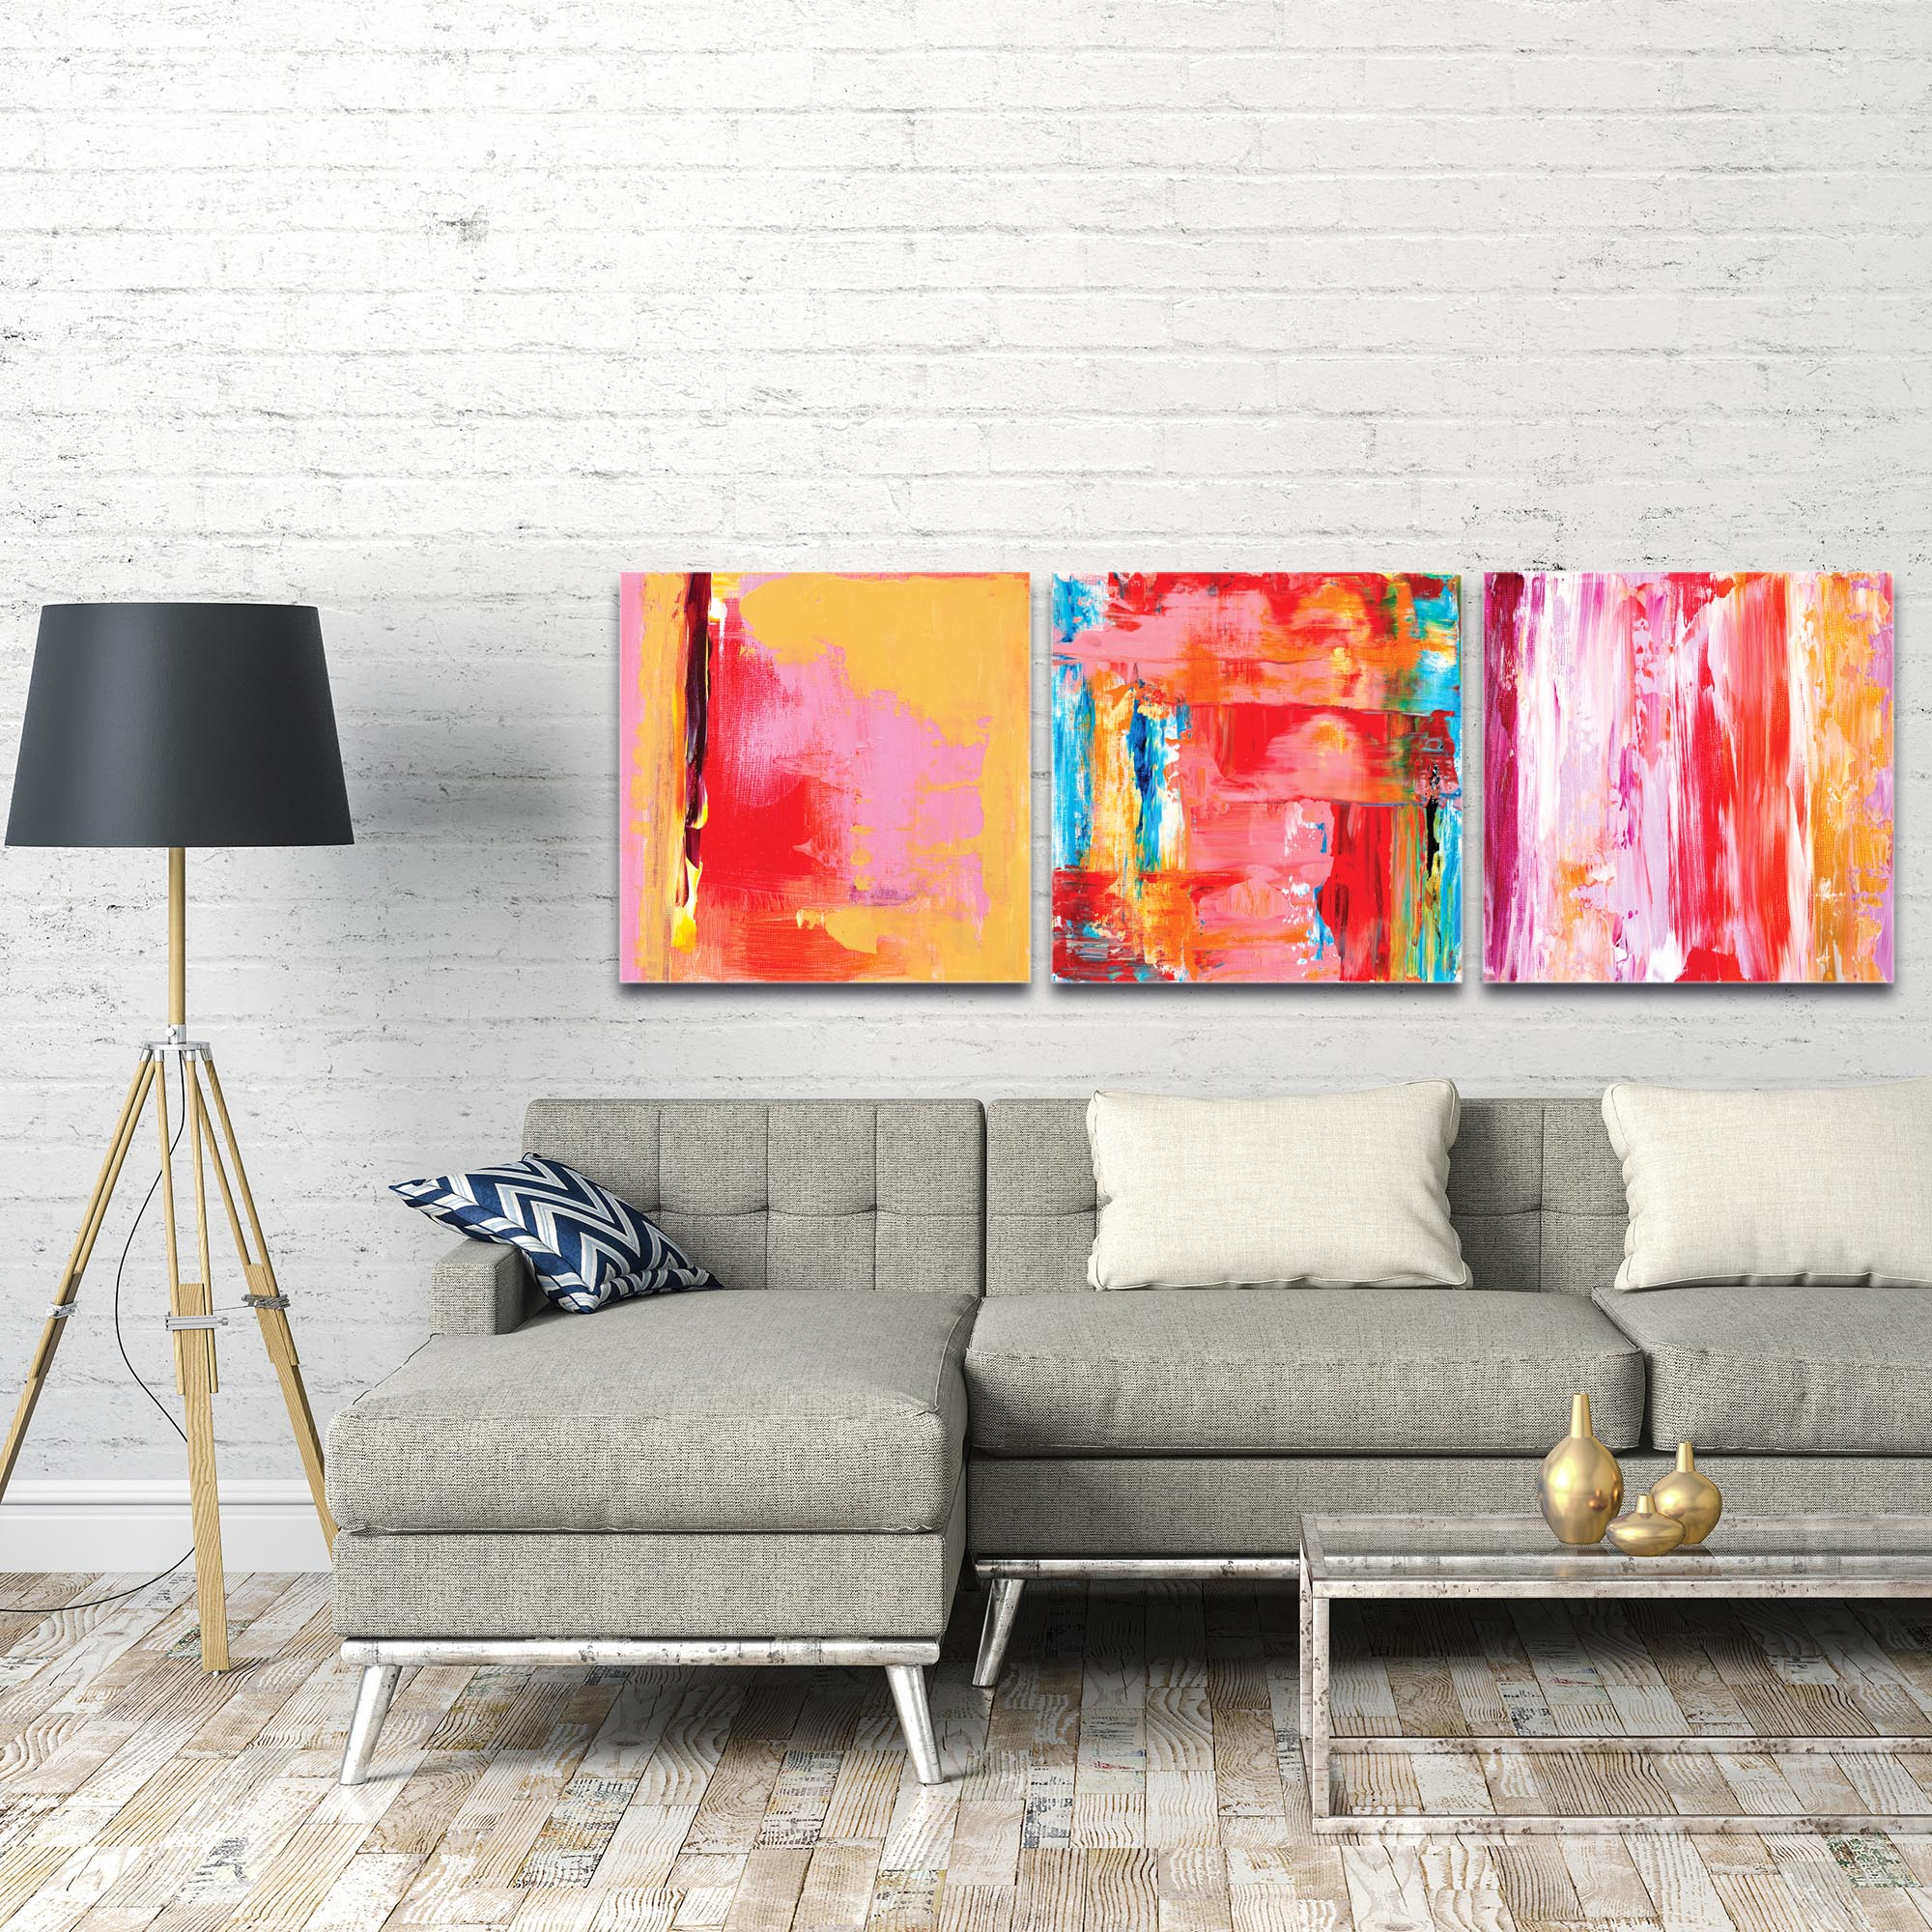 Abstract Wall Art 'Urban Triptych 3 Large' - Urban Decor on Metal or Plexiglass - Image 3